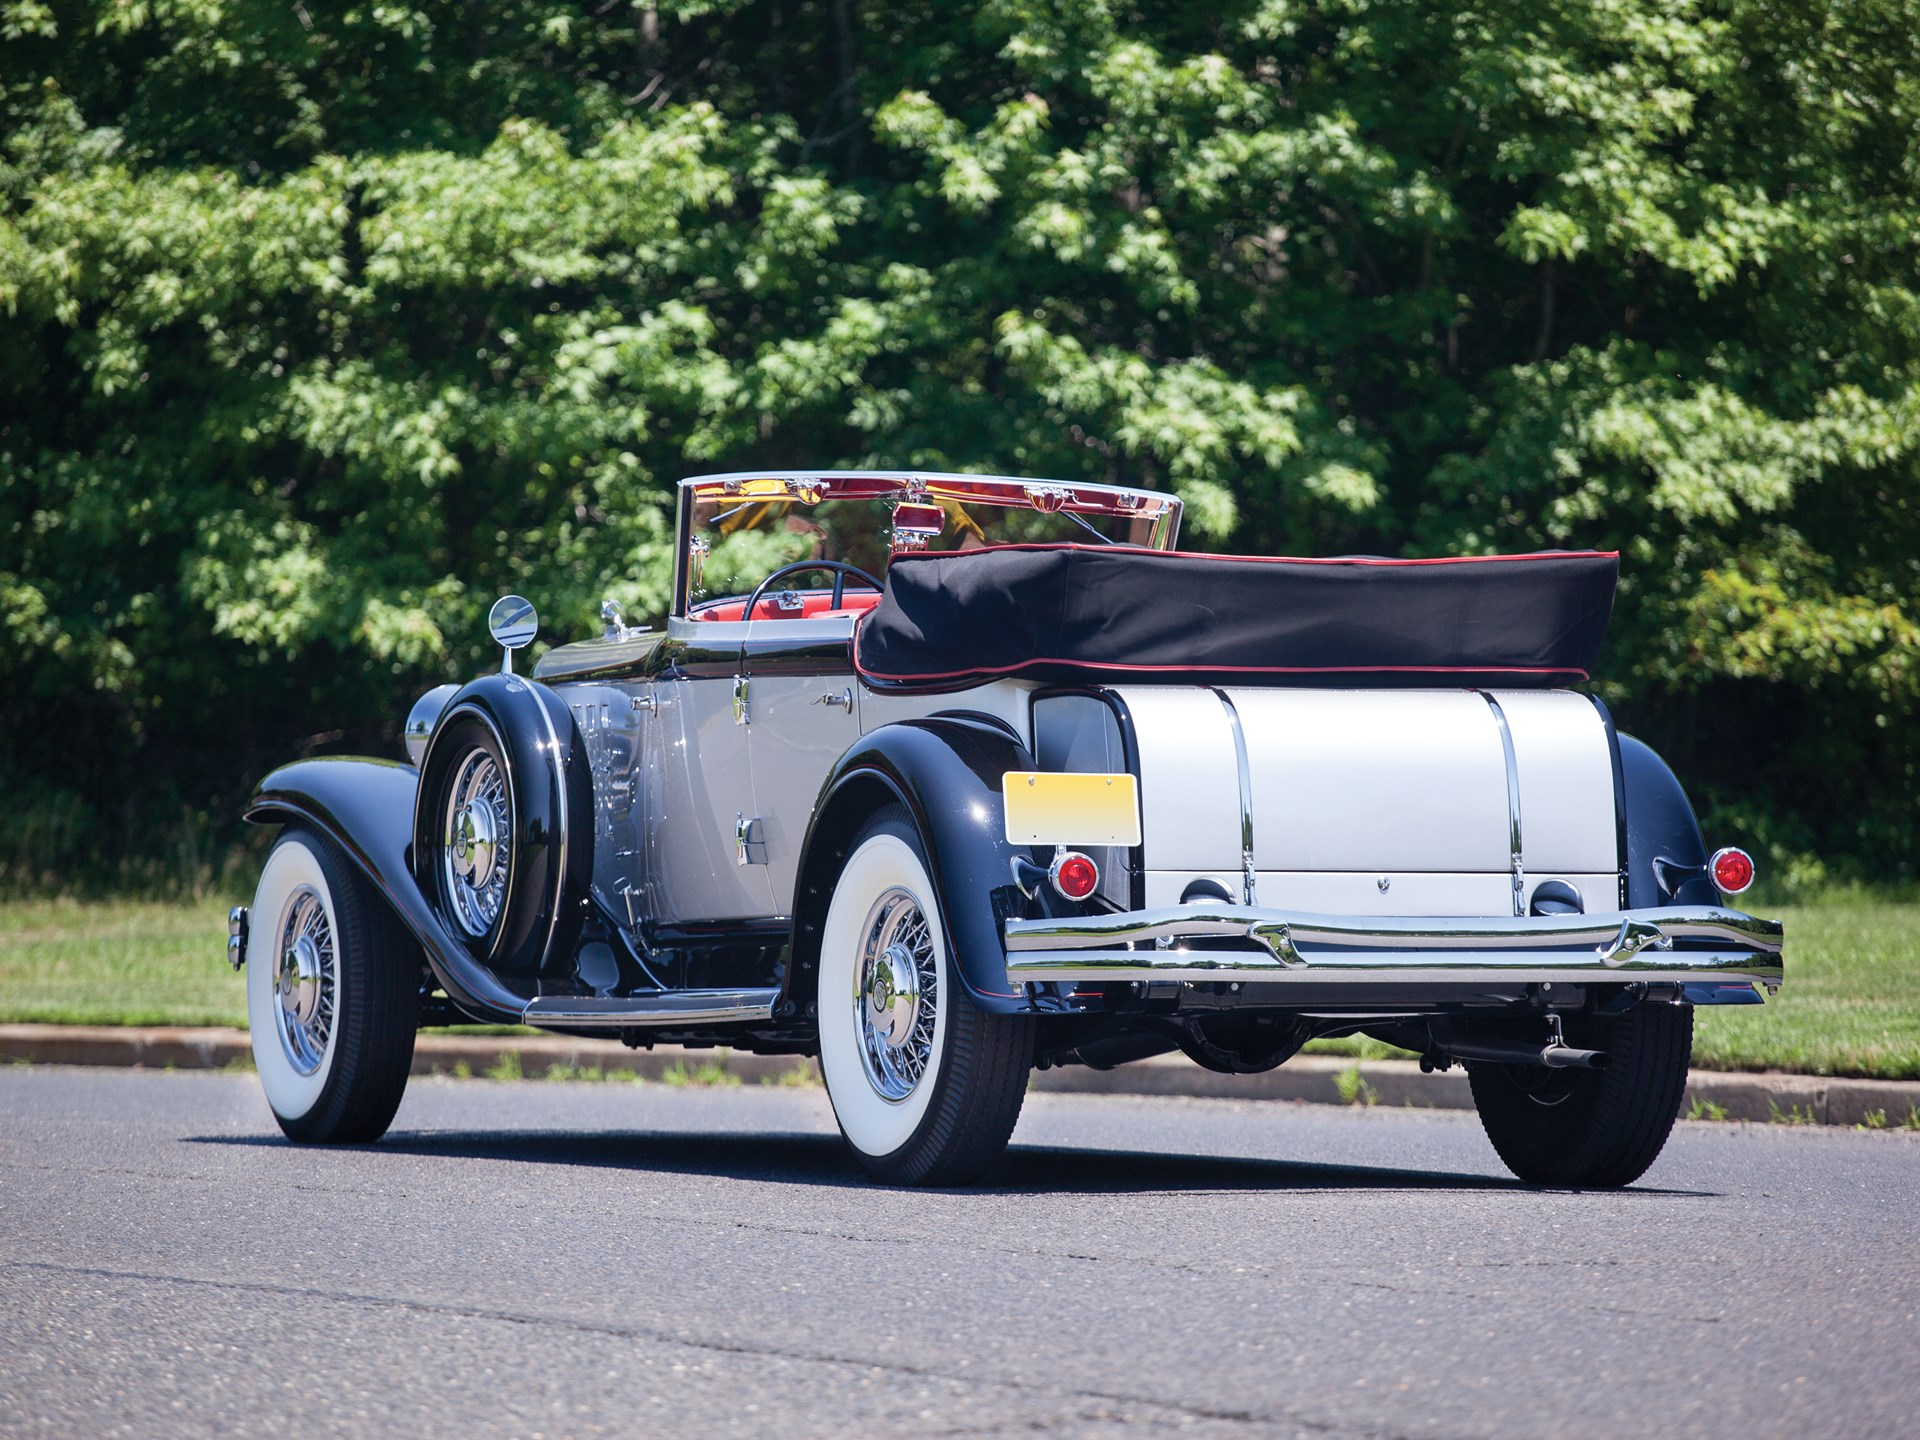 1932 Chrysler CL Imperial Convertible Sedan by LeBaron